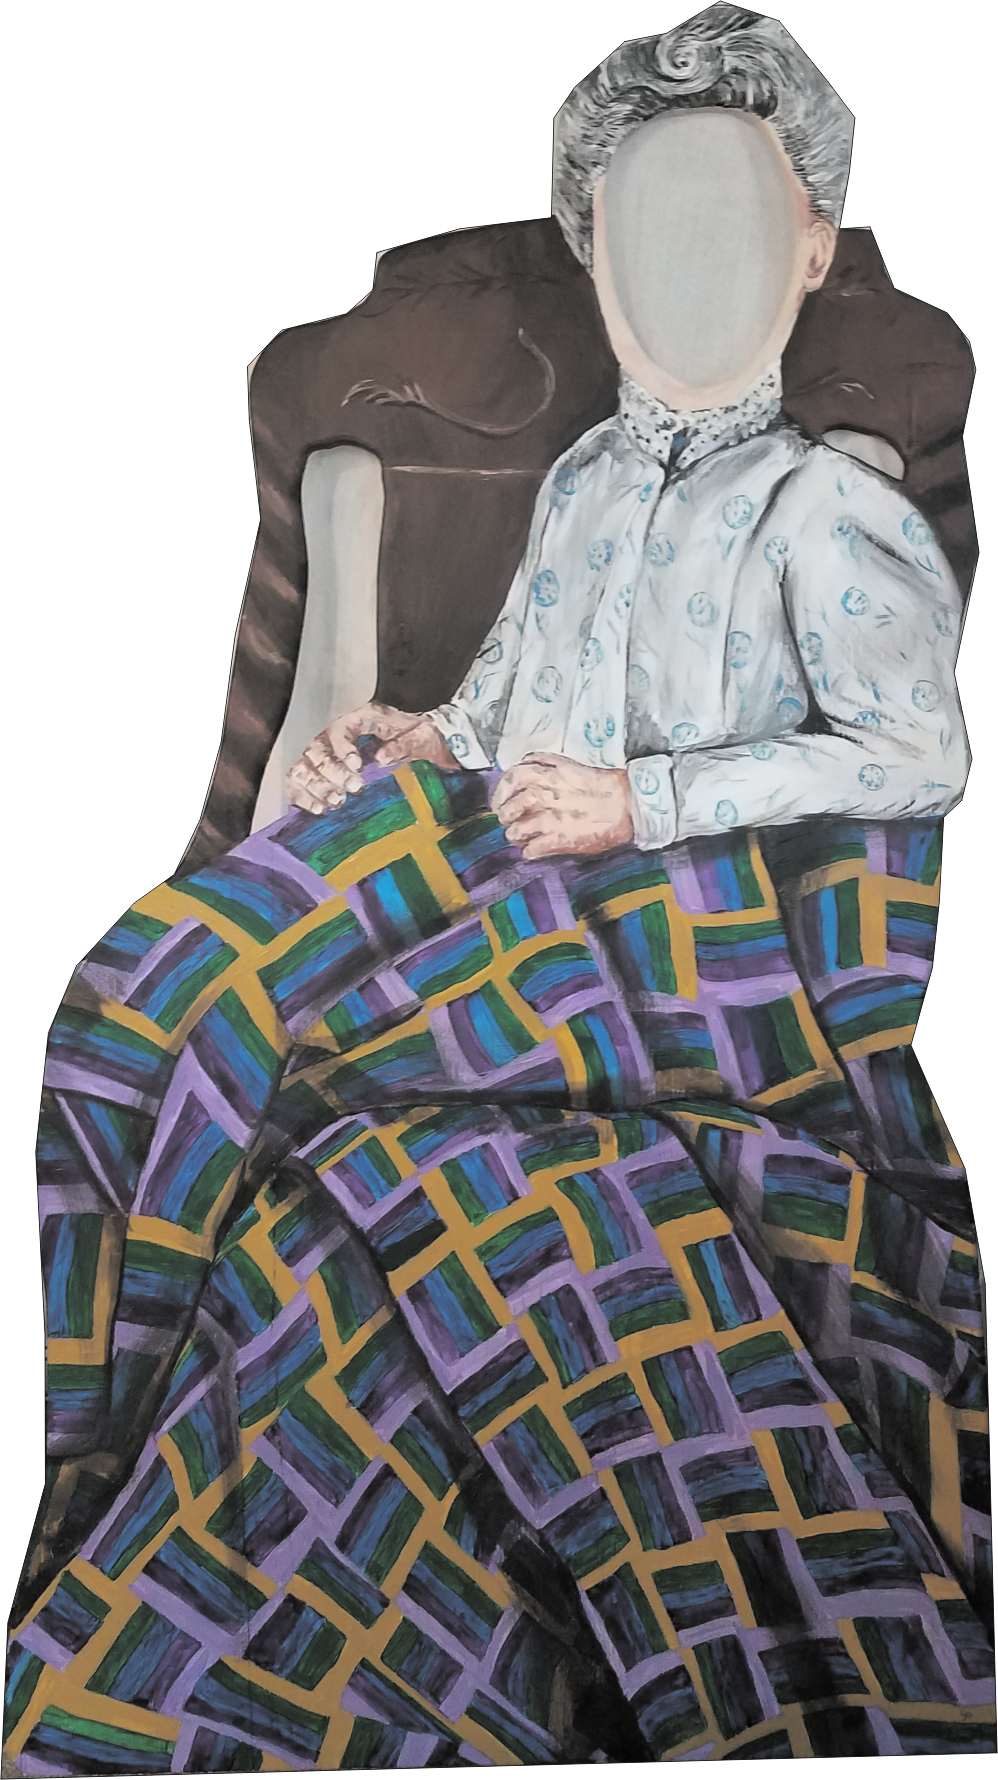 Older lady in chair with 1907 style quilt